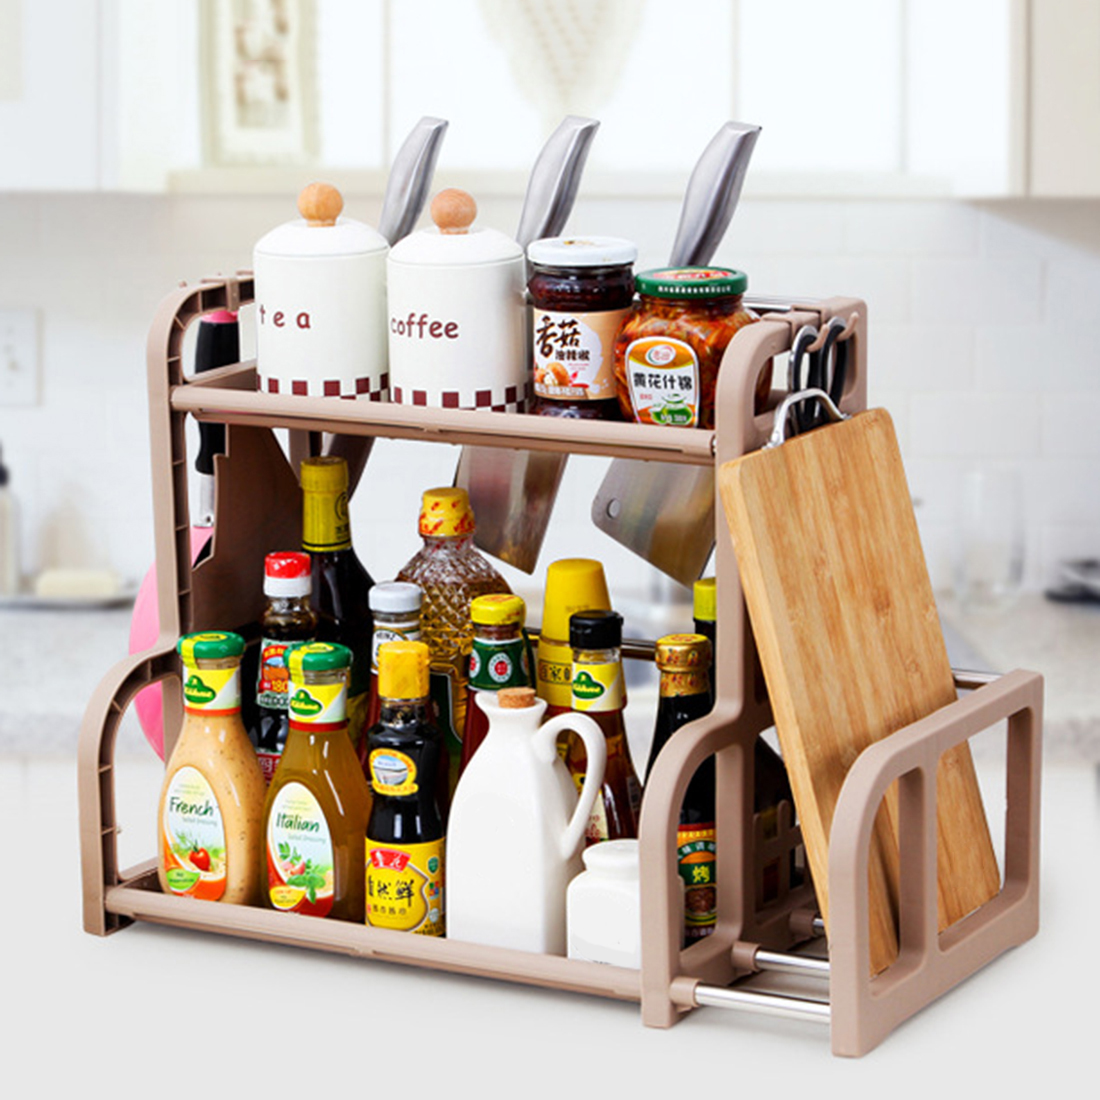 Aliexpress com buy hipsteen 2 layer multifunction kitchen storage rack seasoning rack kitchen storage shelves coffee from reliable kitchen storage shelves